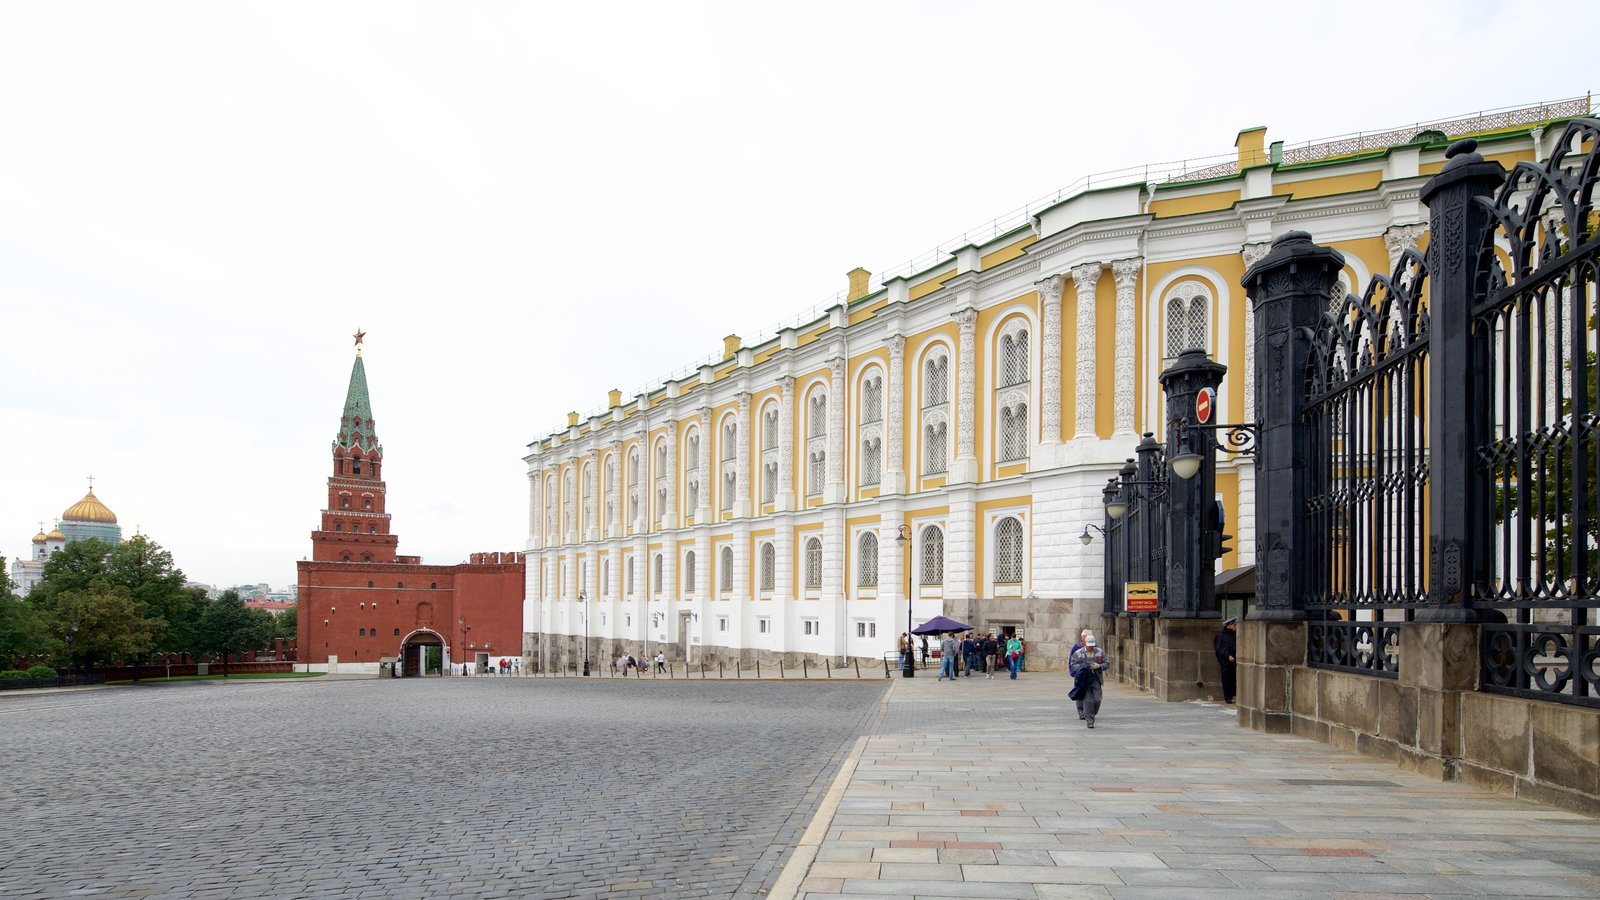 Kremlin Armoury Museum showing heritage architecture